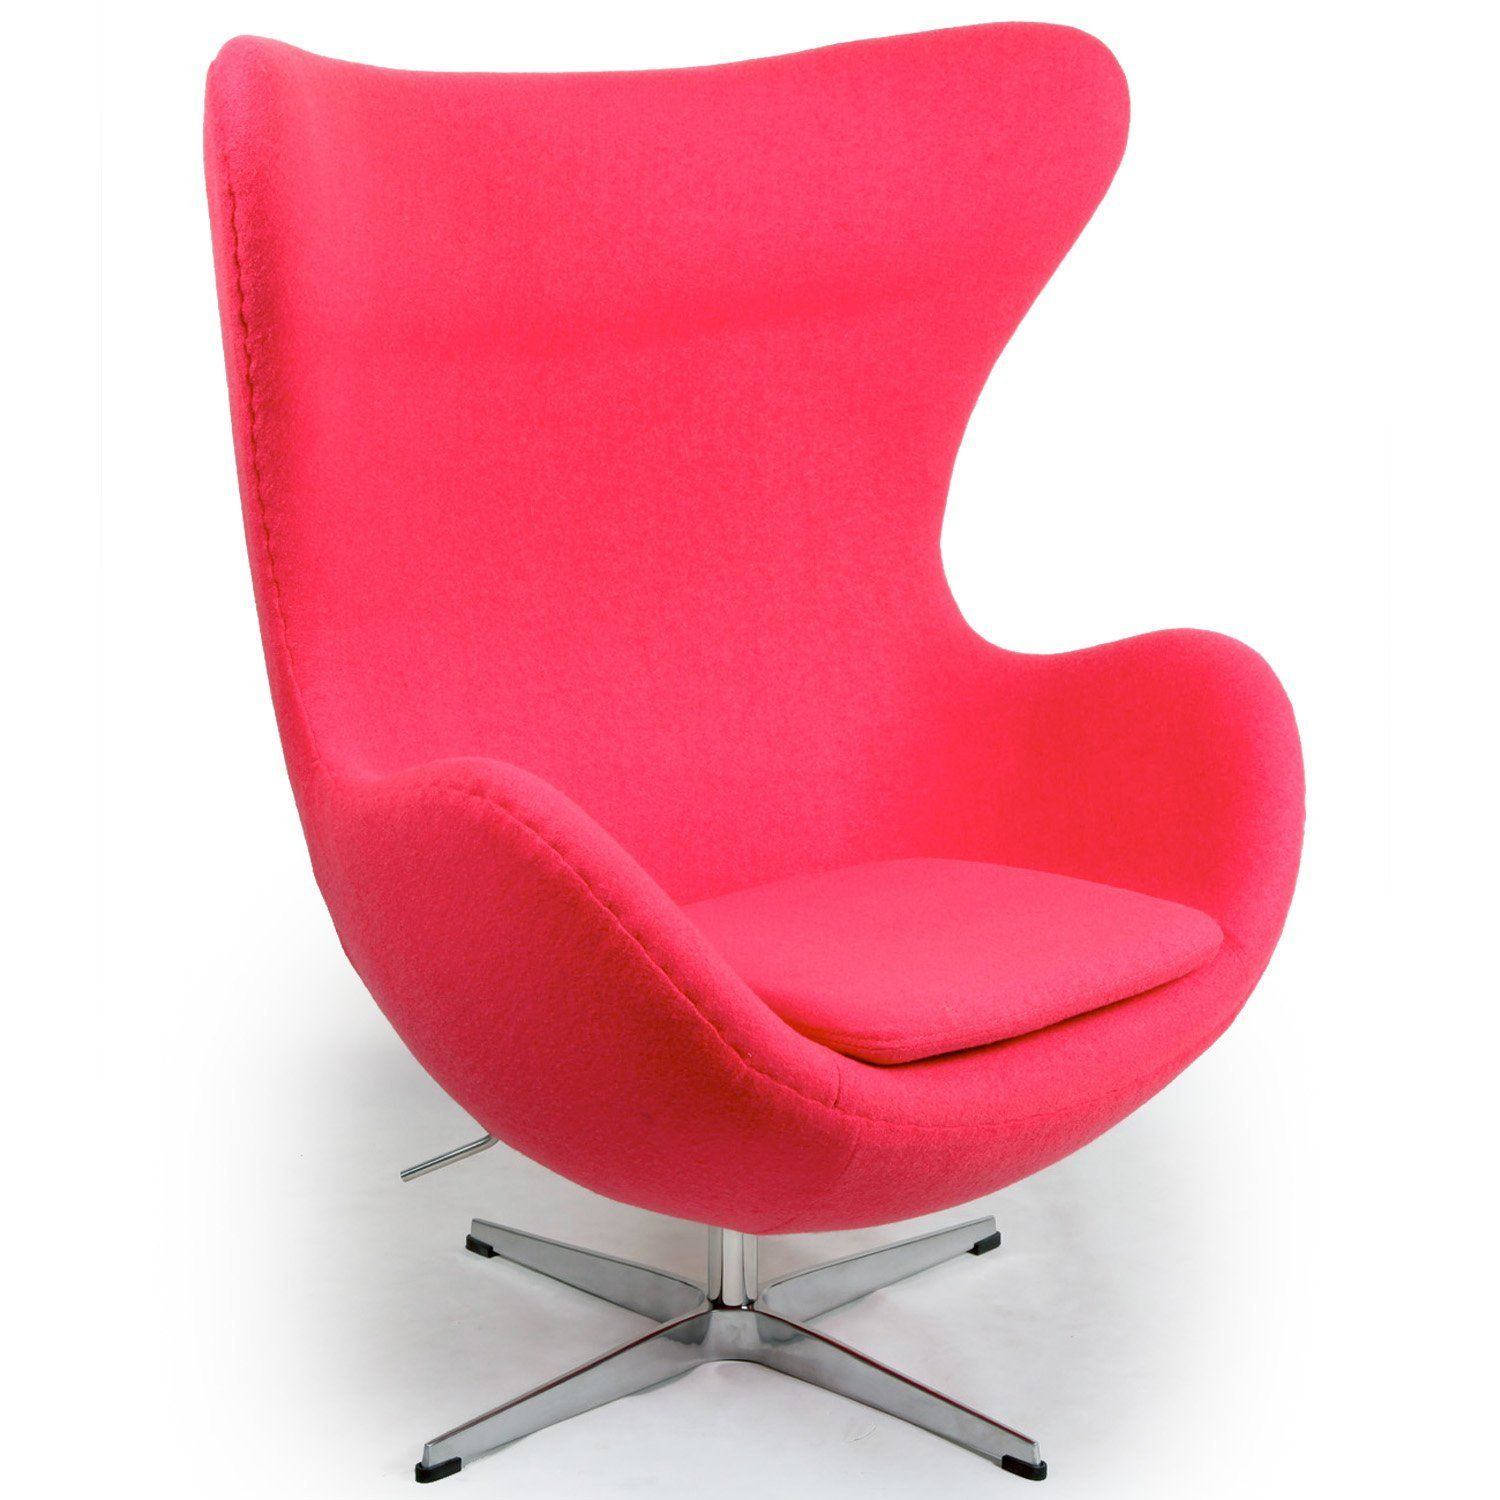 Funky Chairs For Teens | Funky Pink Chairs For Teen Girls: Kardiel Egg Chair ,